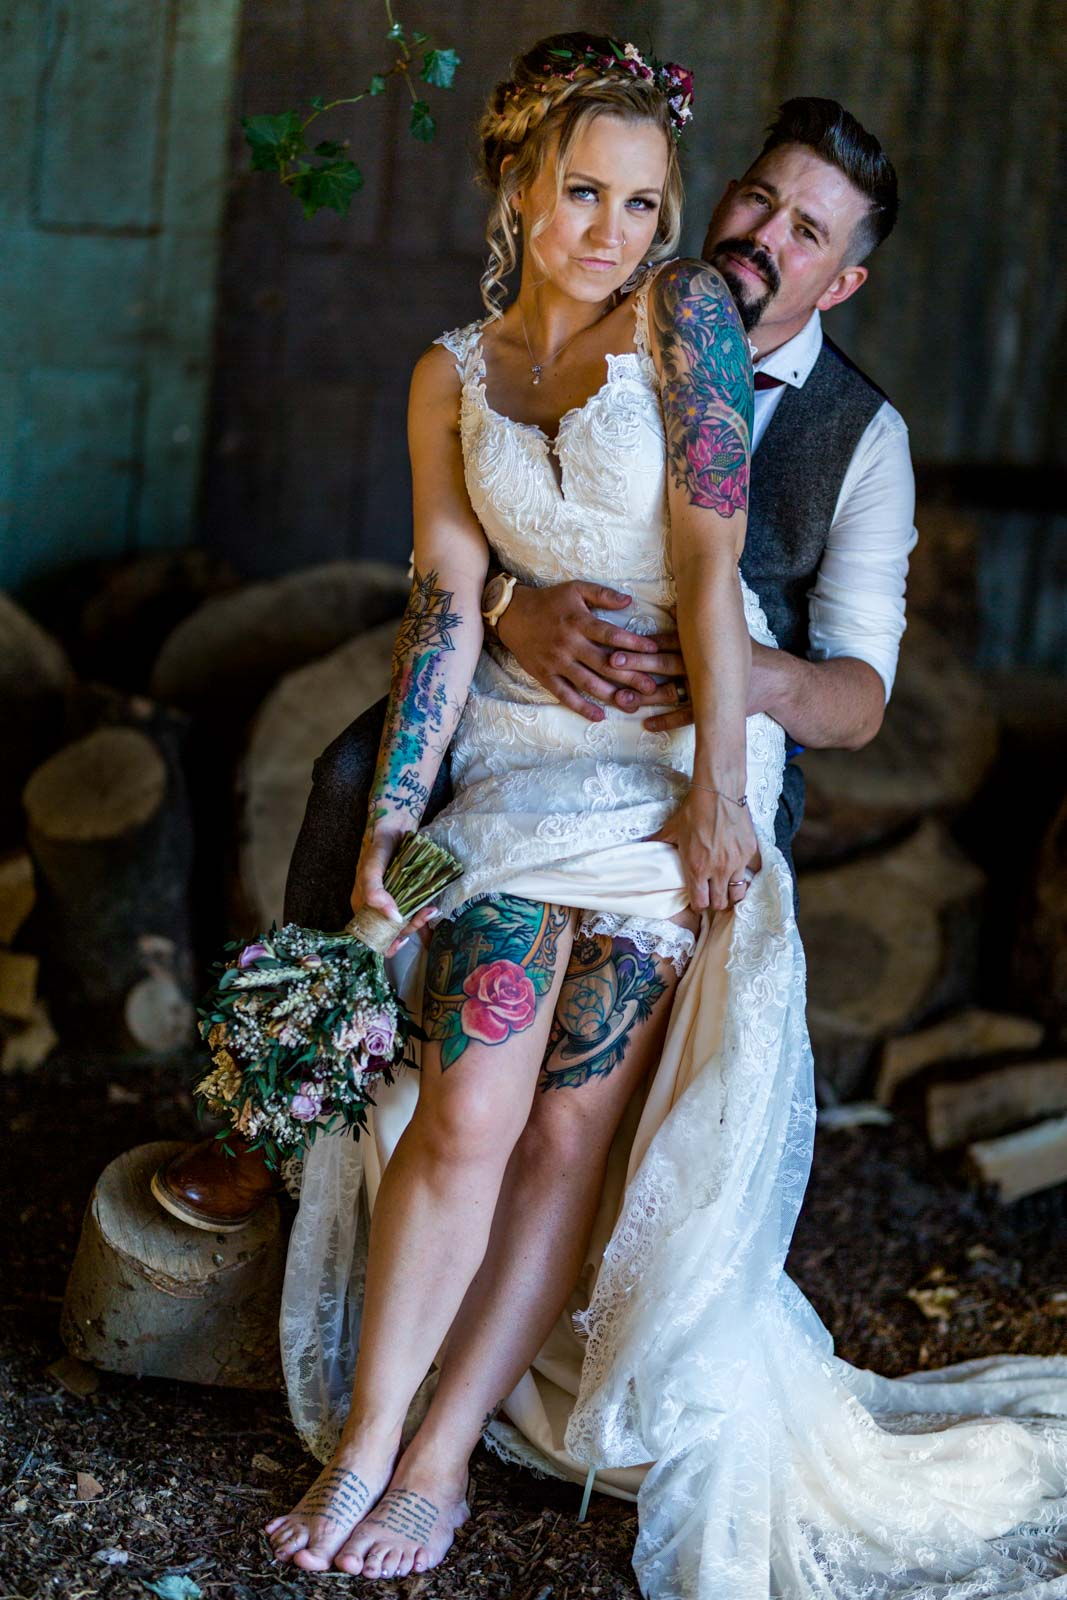 Rock bride showing her tattoos and her ethereal themed wedding